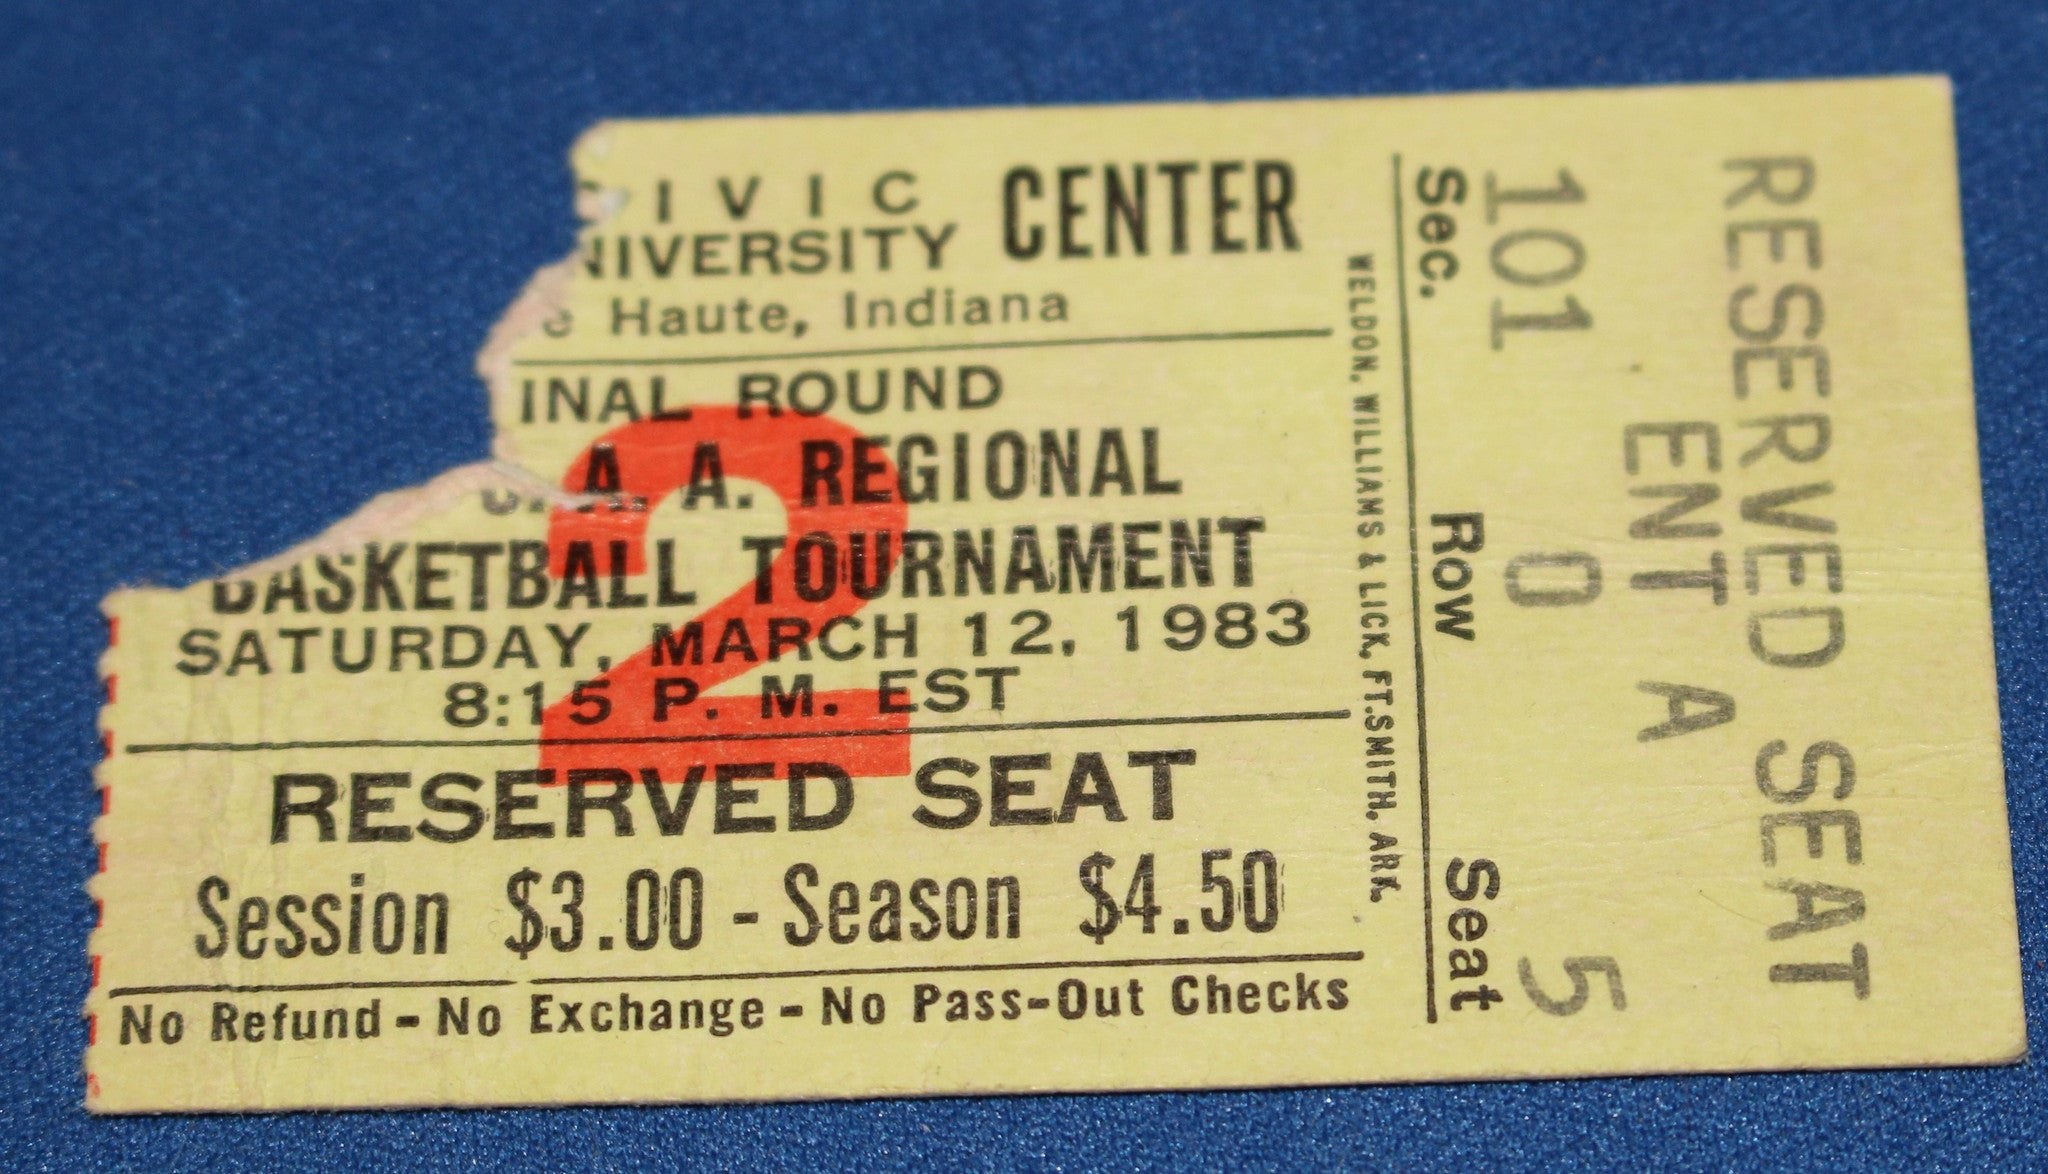 1983 Terre Haute Indiana High School Basketball Regional Ticket Stub - Vintage Indy Sports